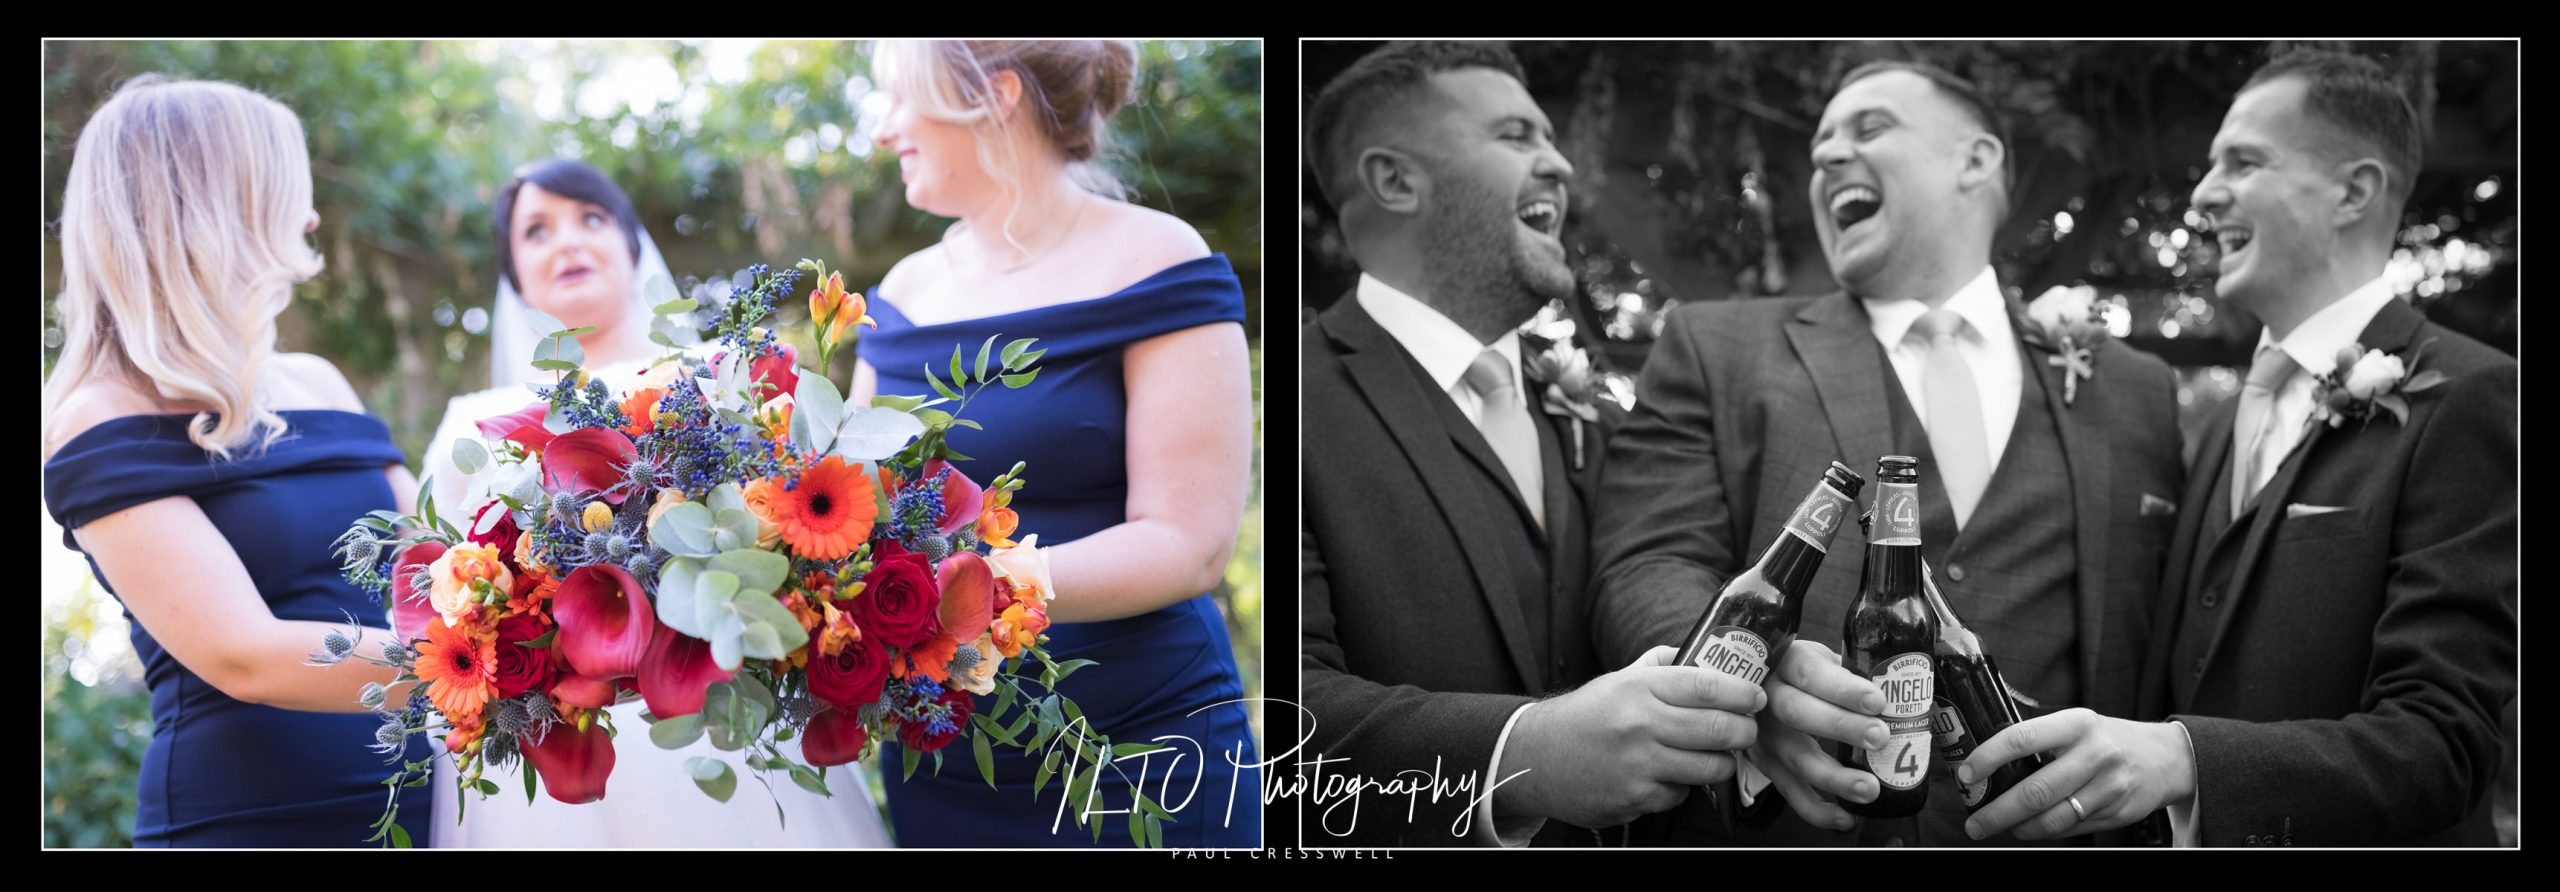 Creative funny wedding photographer west yorkshire ILTO photography